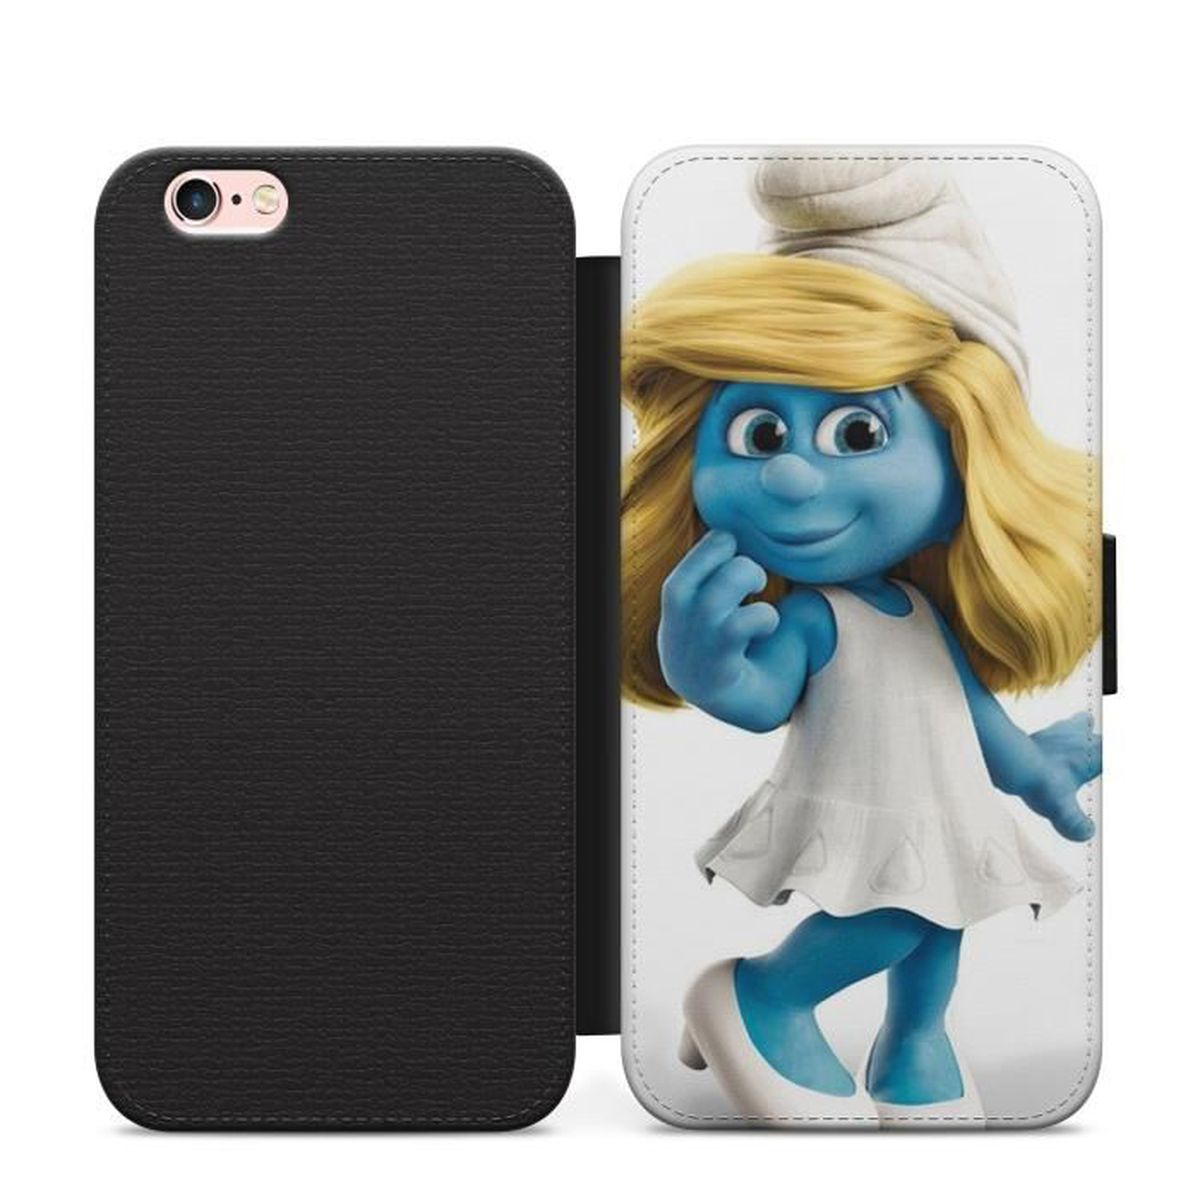 coque iphone 5 schtroumpf